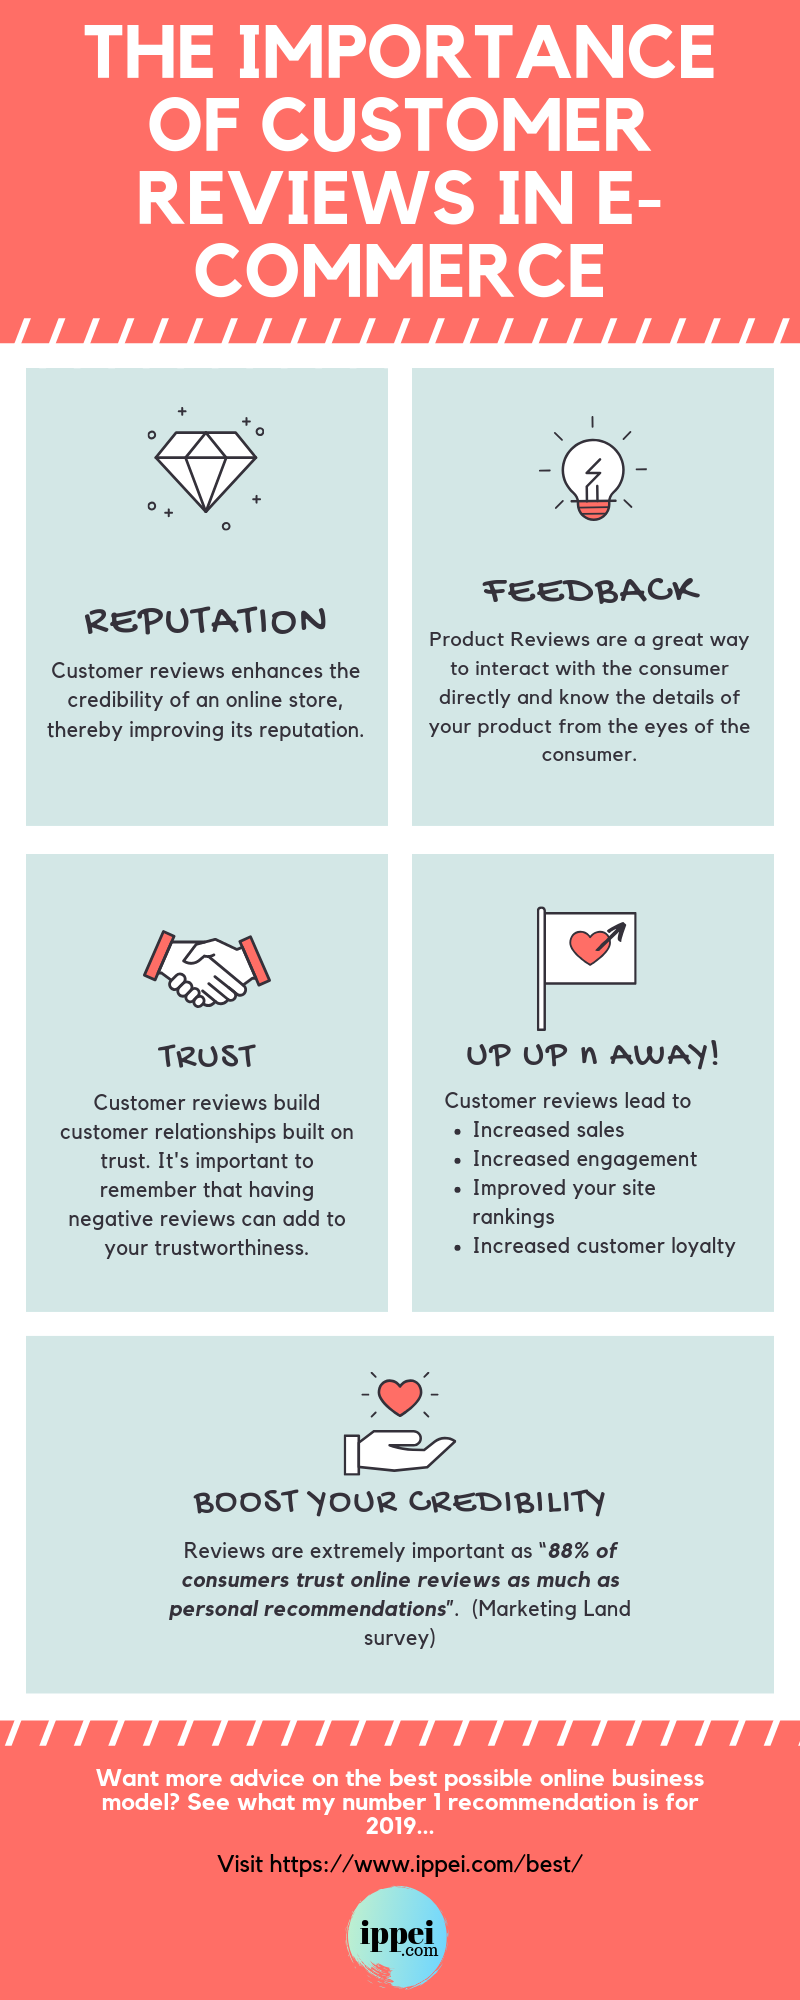 The importance of customer reviews online